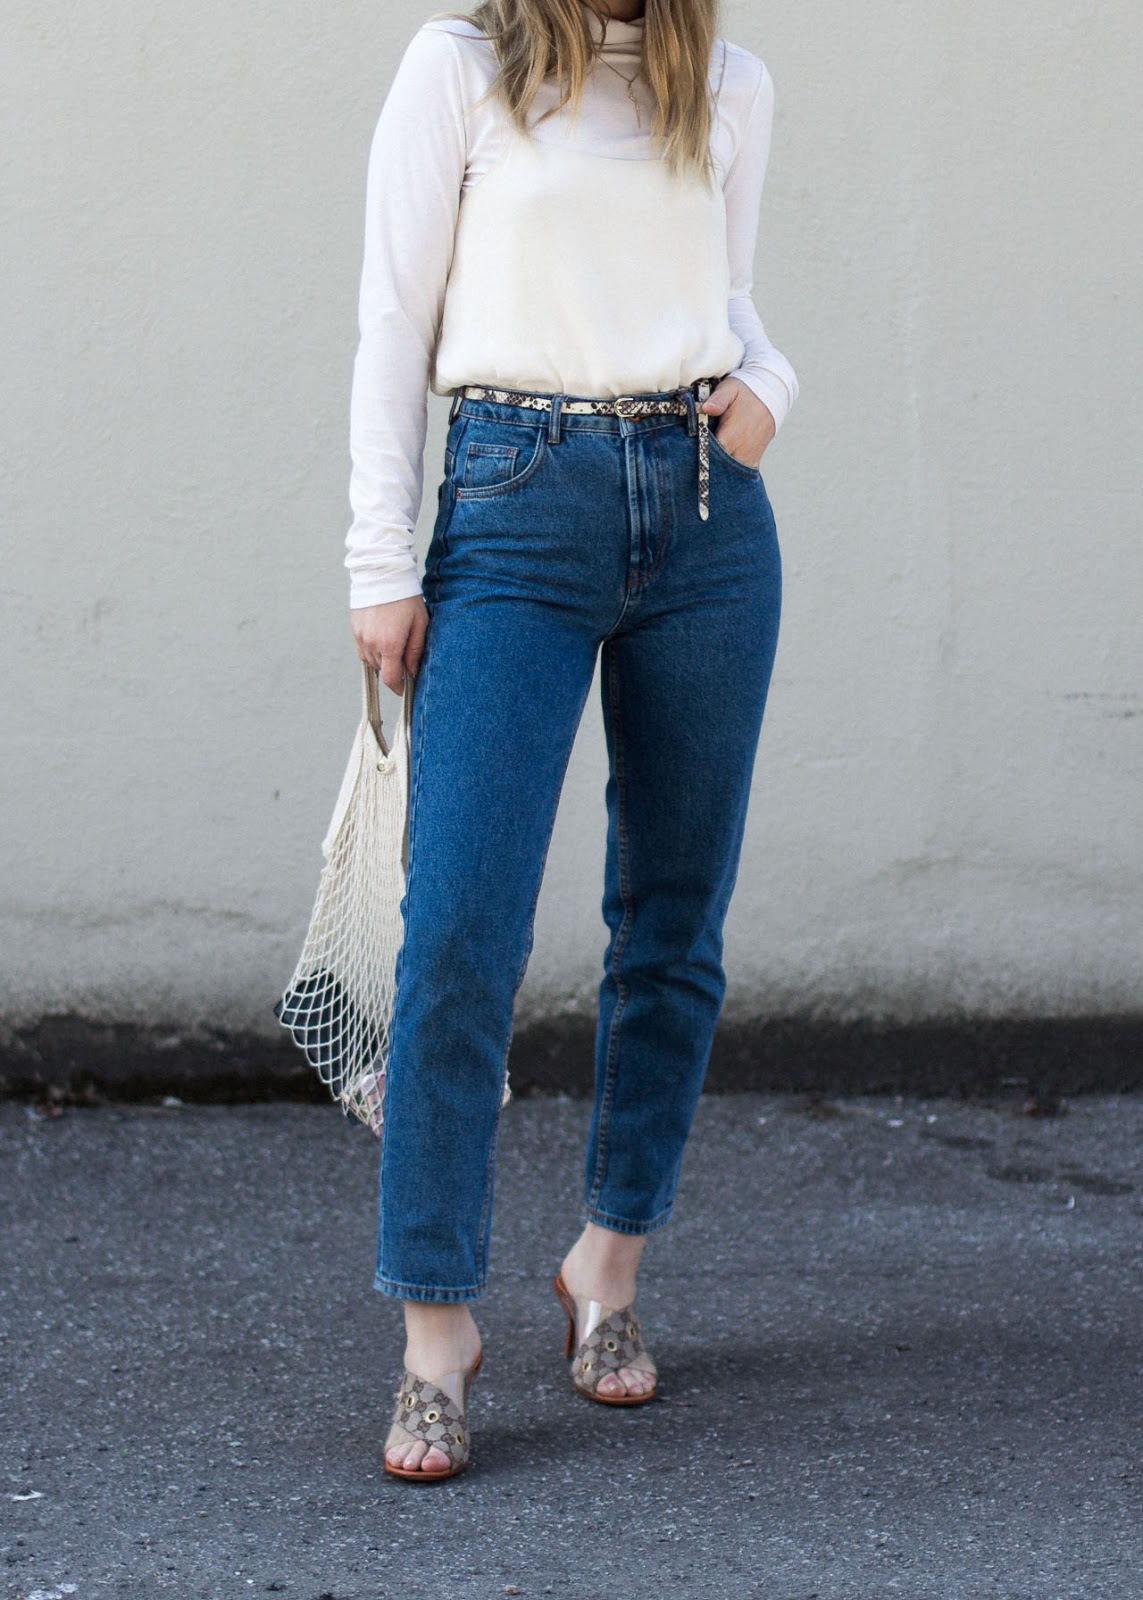 In My Dreams - Personal Style Blogger - Fall outfit layers - Aritzia - Zara - Gucci